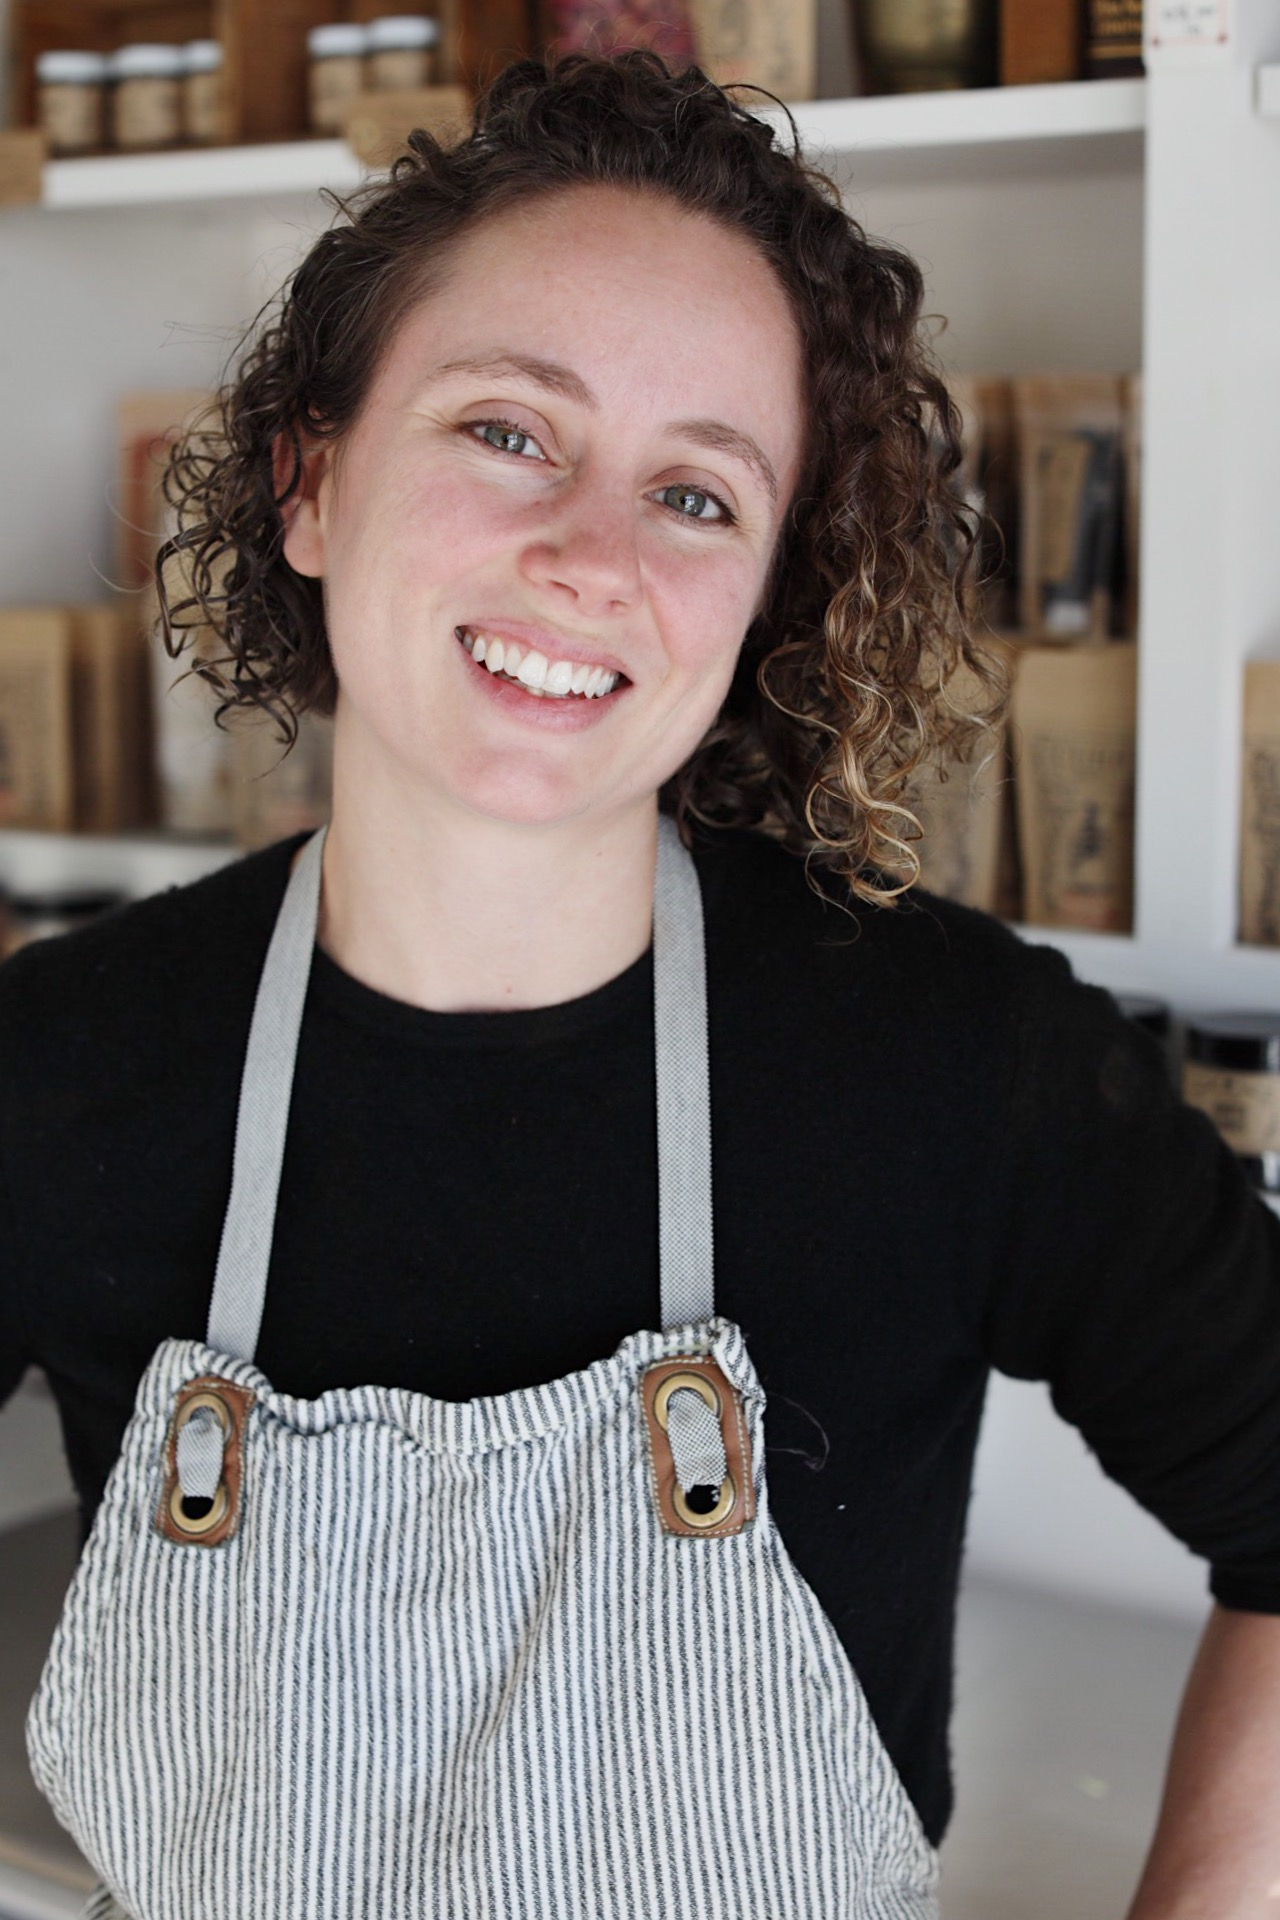 Claire Cheney, Owner of Curio Spice Co.